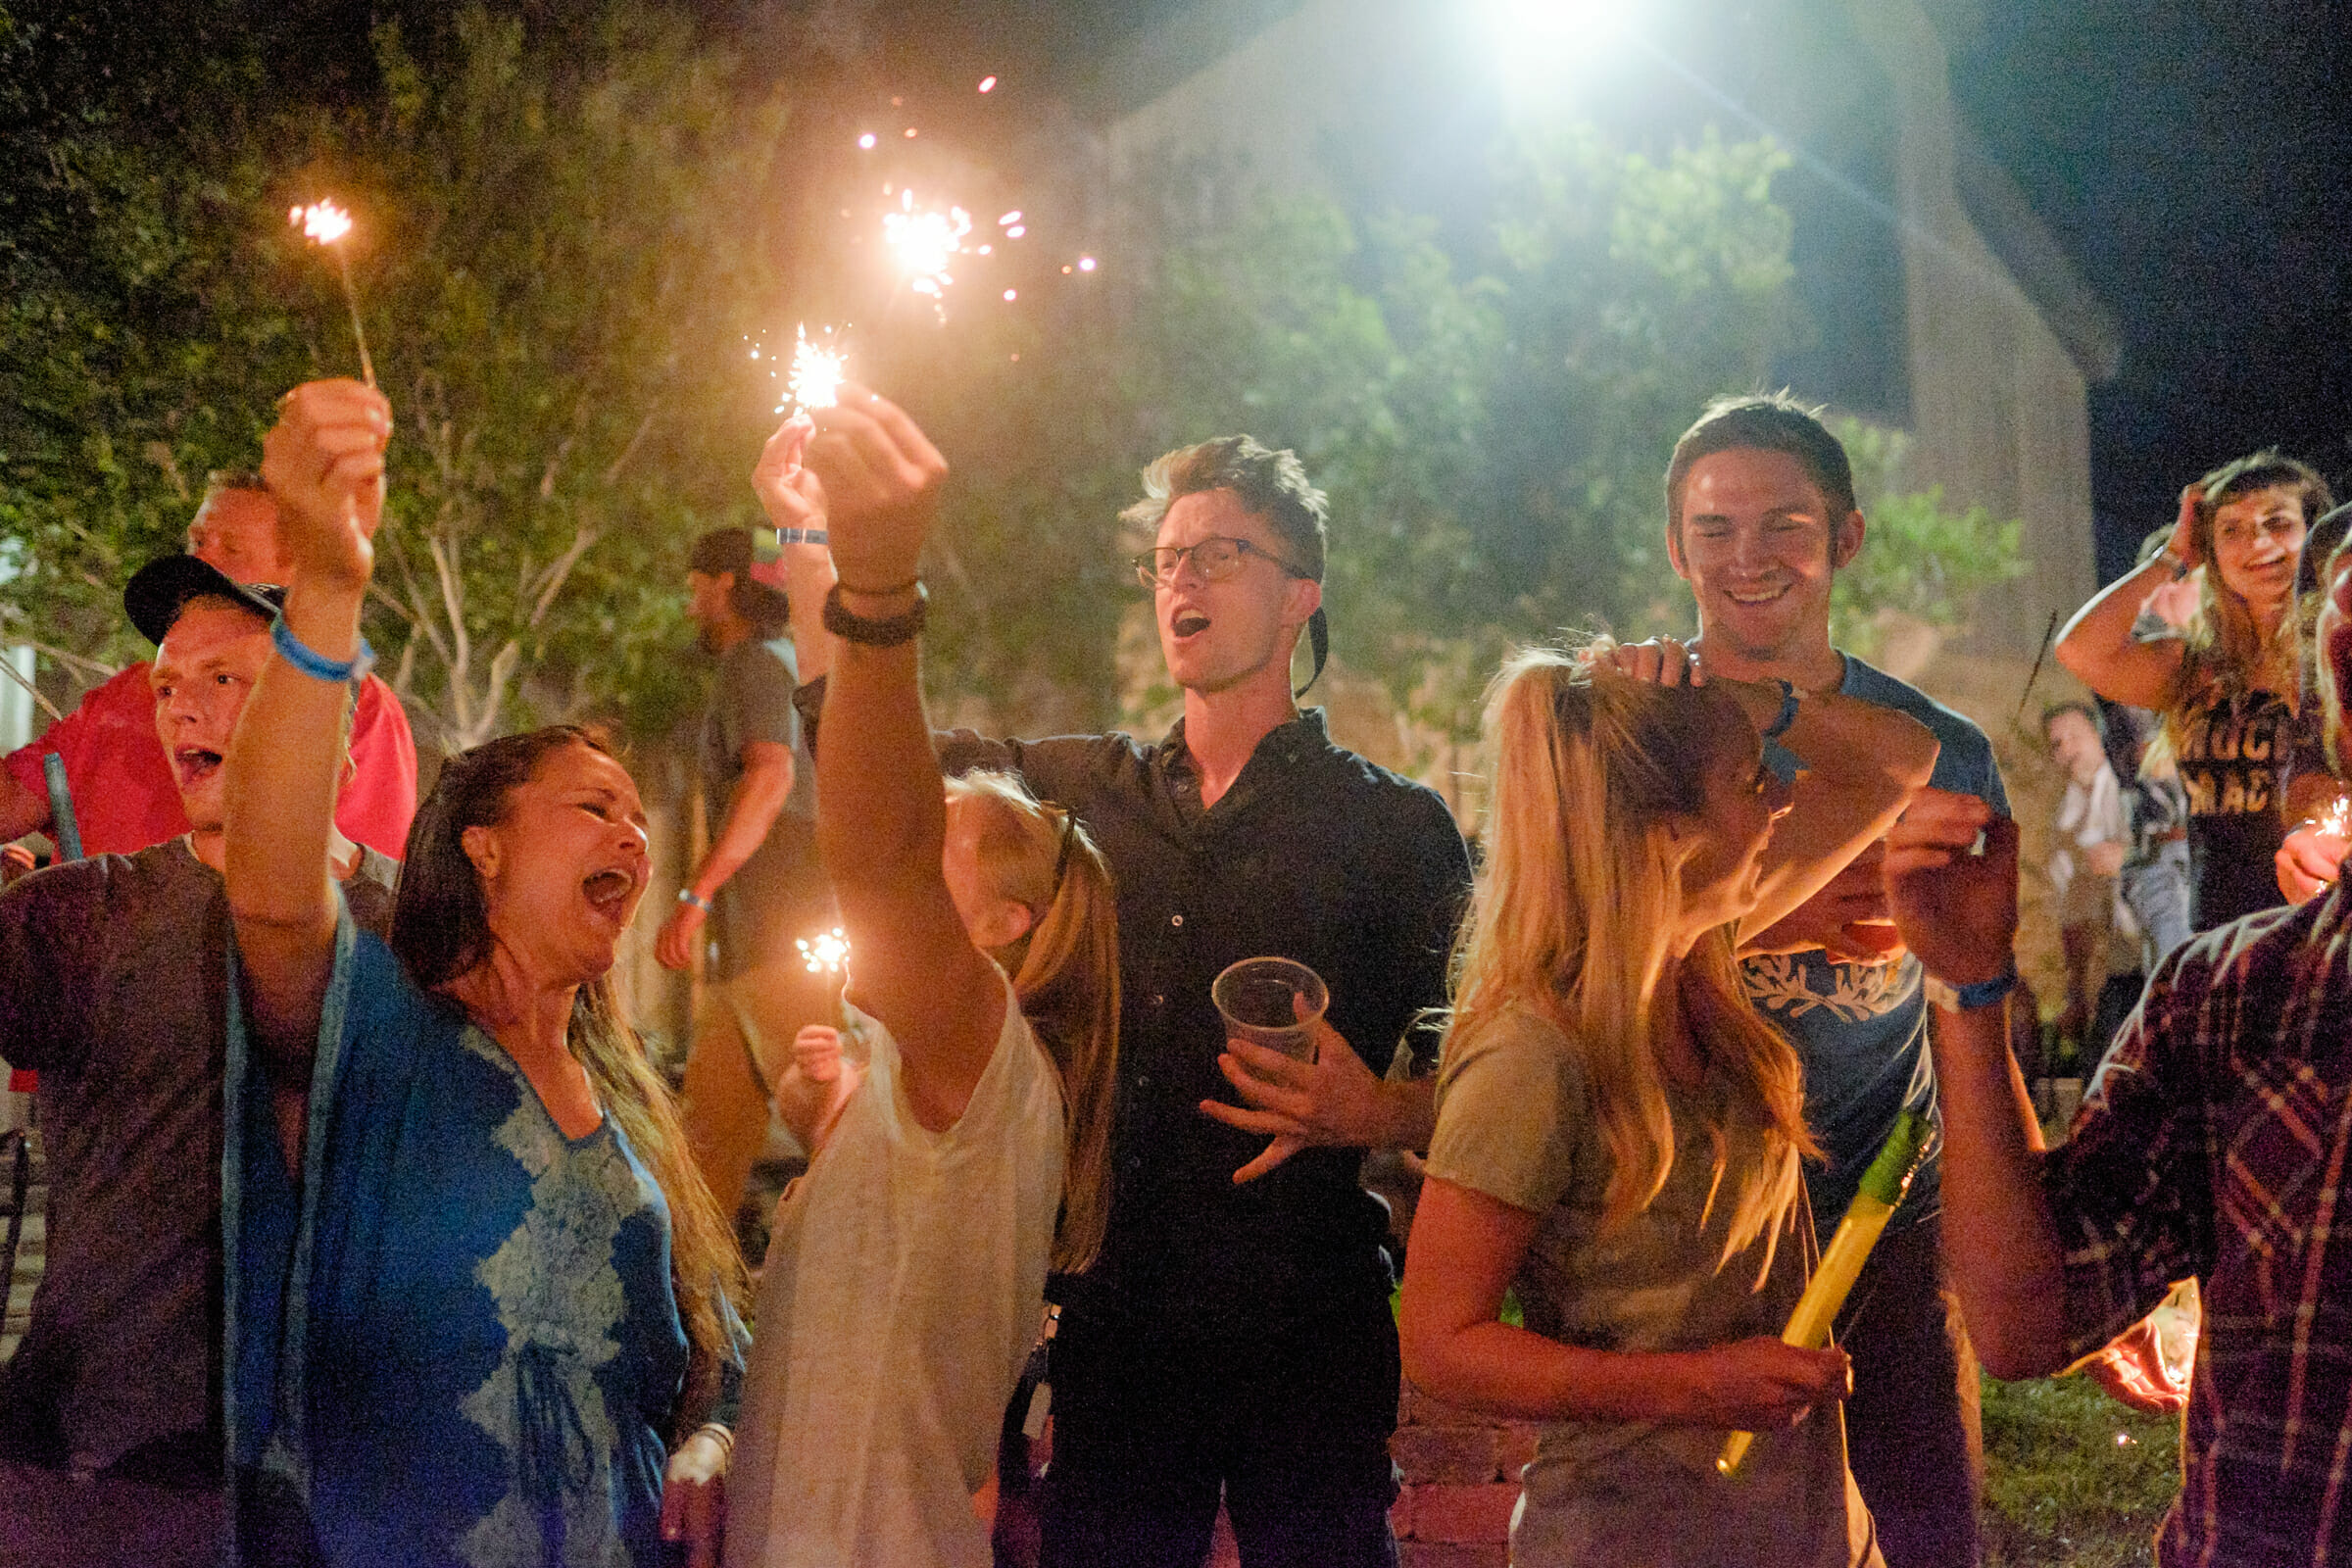 Group of people celebrating with sparklers